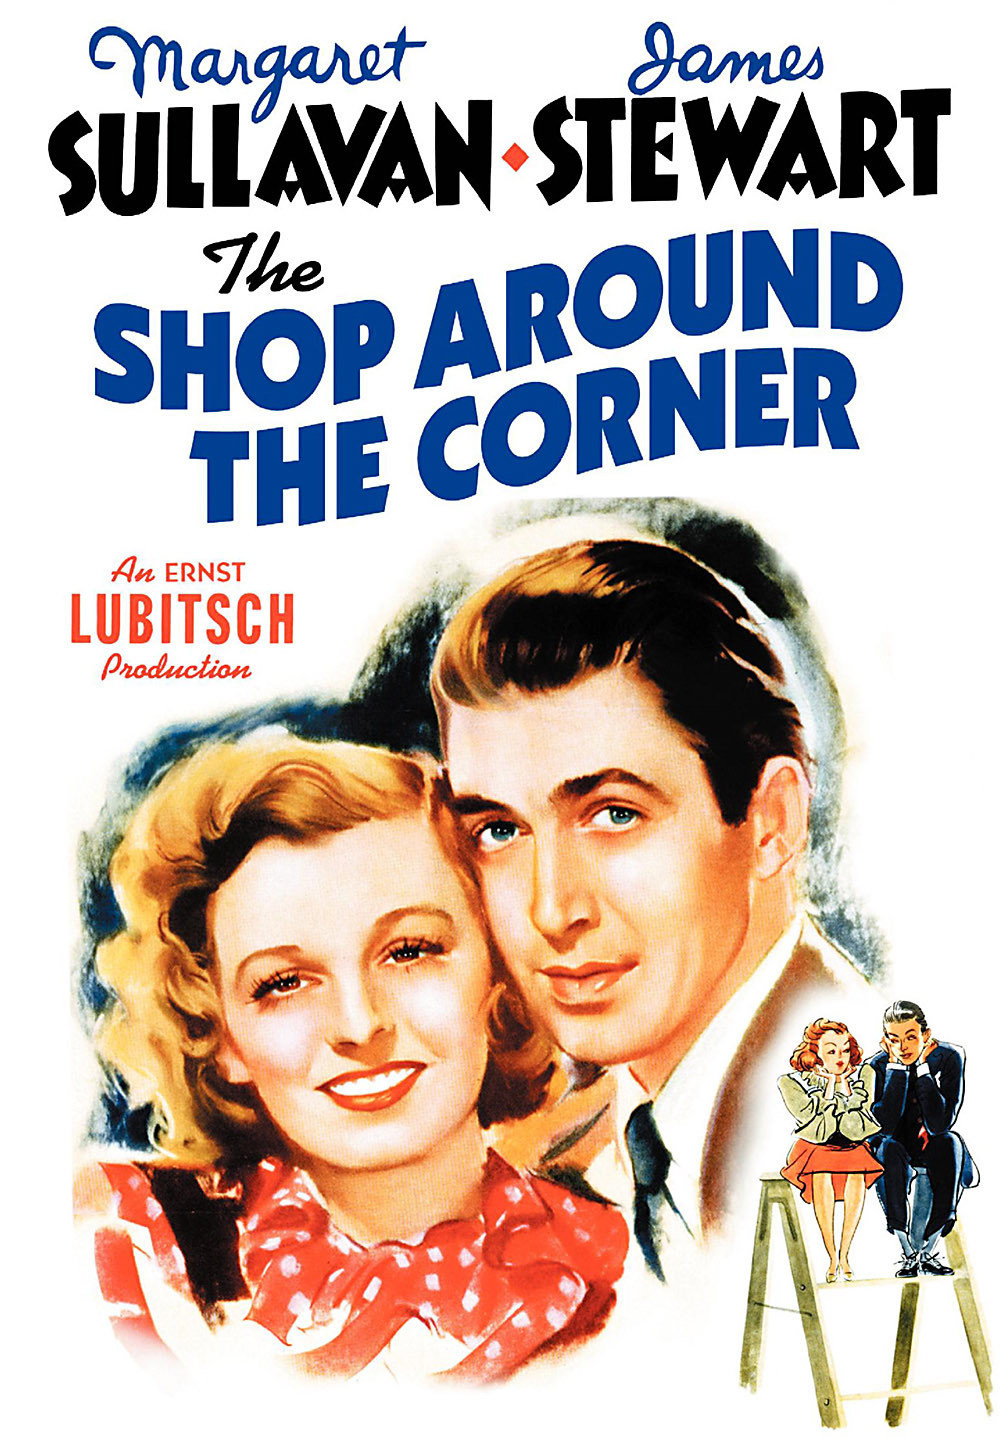 The Shop Around the Corner is a 1940 American romantic comedy film produced and directed by Ernst Lubitsch and starring James Stewart, Margaret Sullavan, and Frank Morgan.